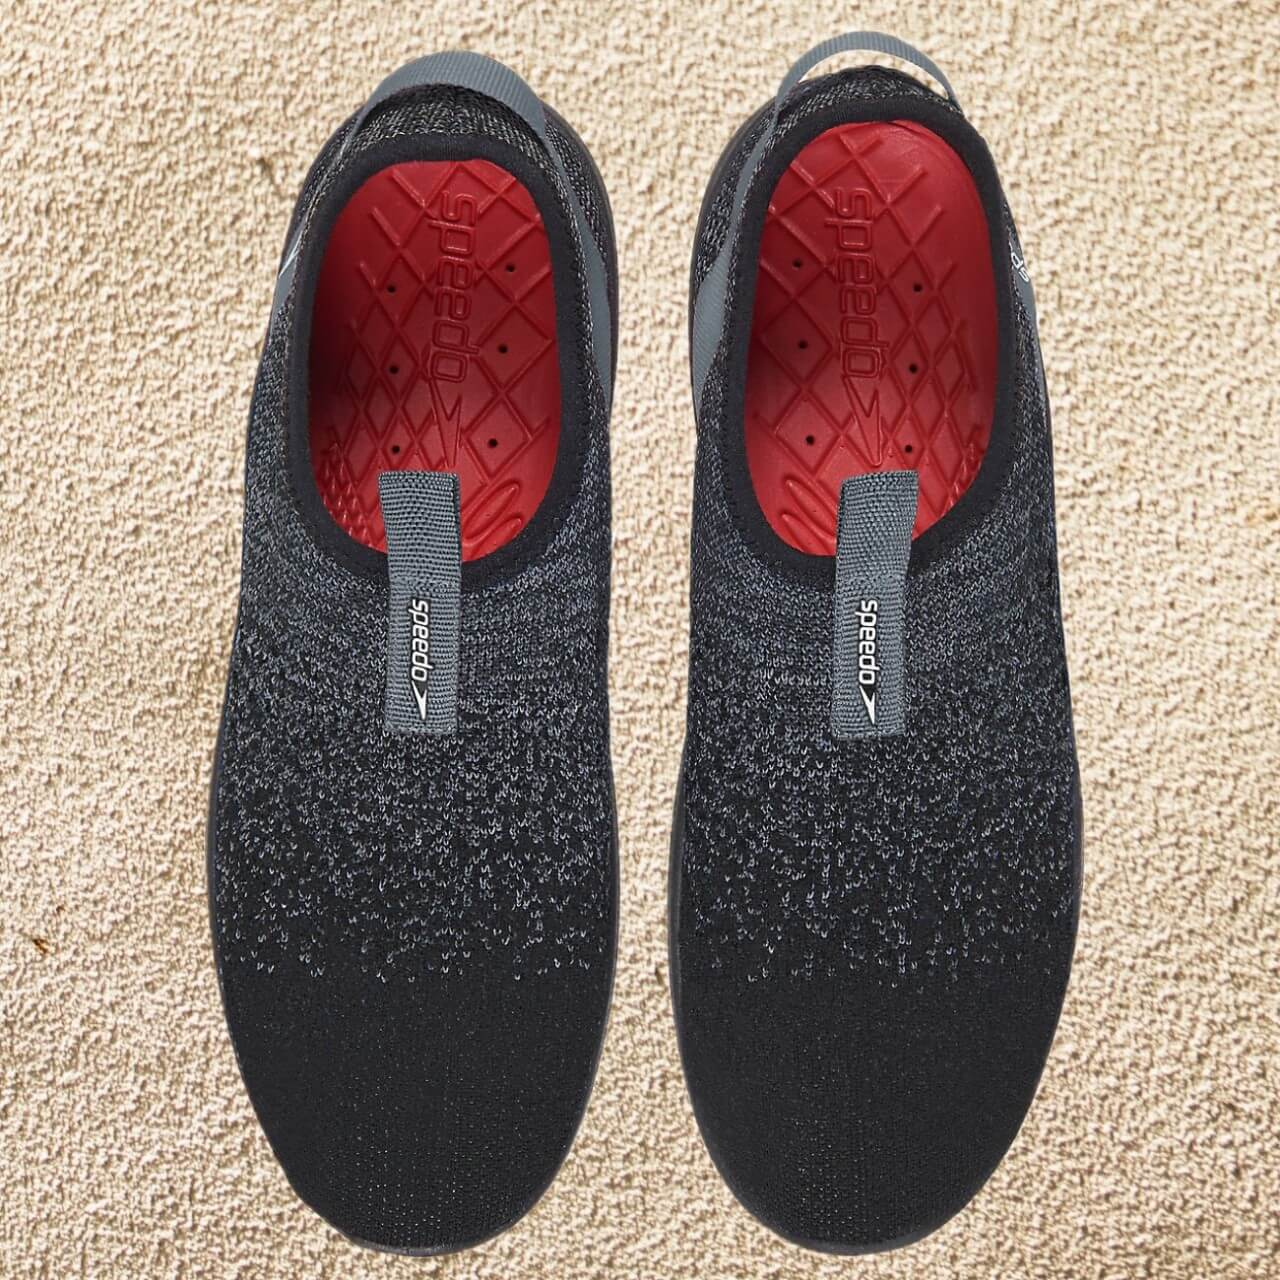 Overhead of speed surf knit pro showing insole and upper